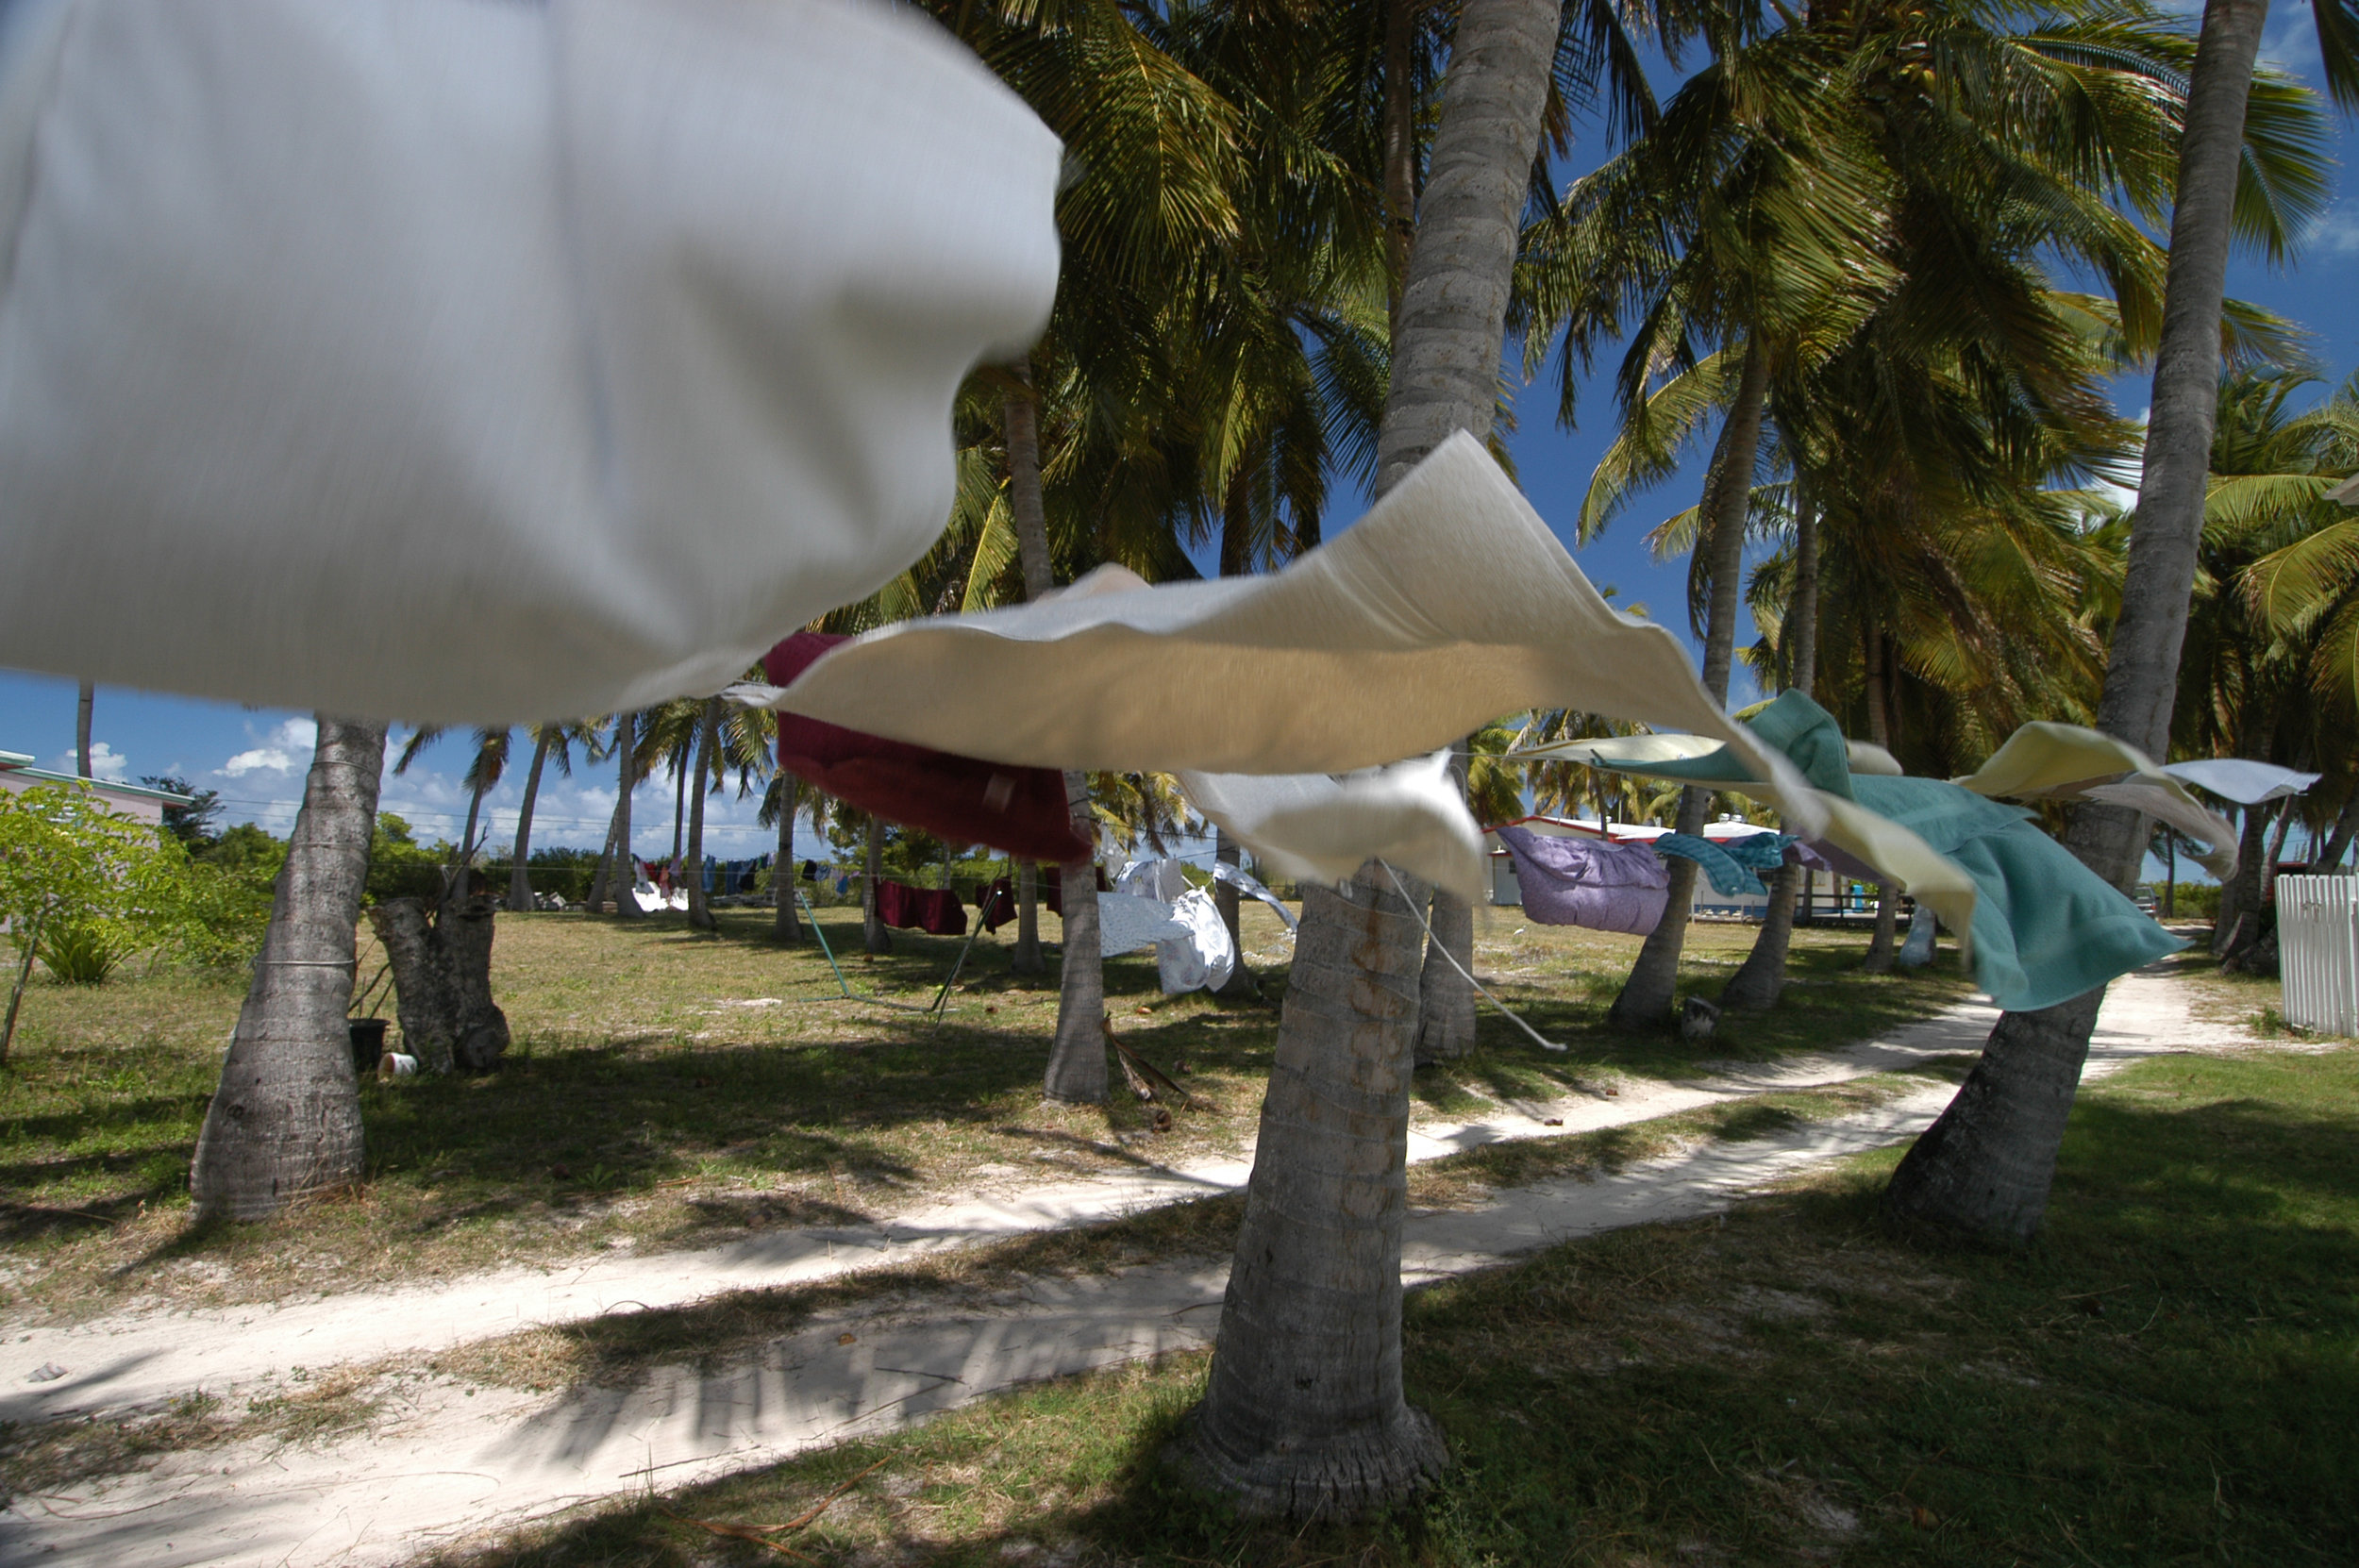 Laundry in the breeze on Anegada Island